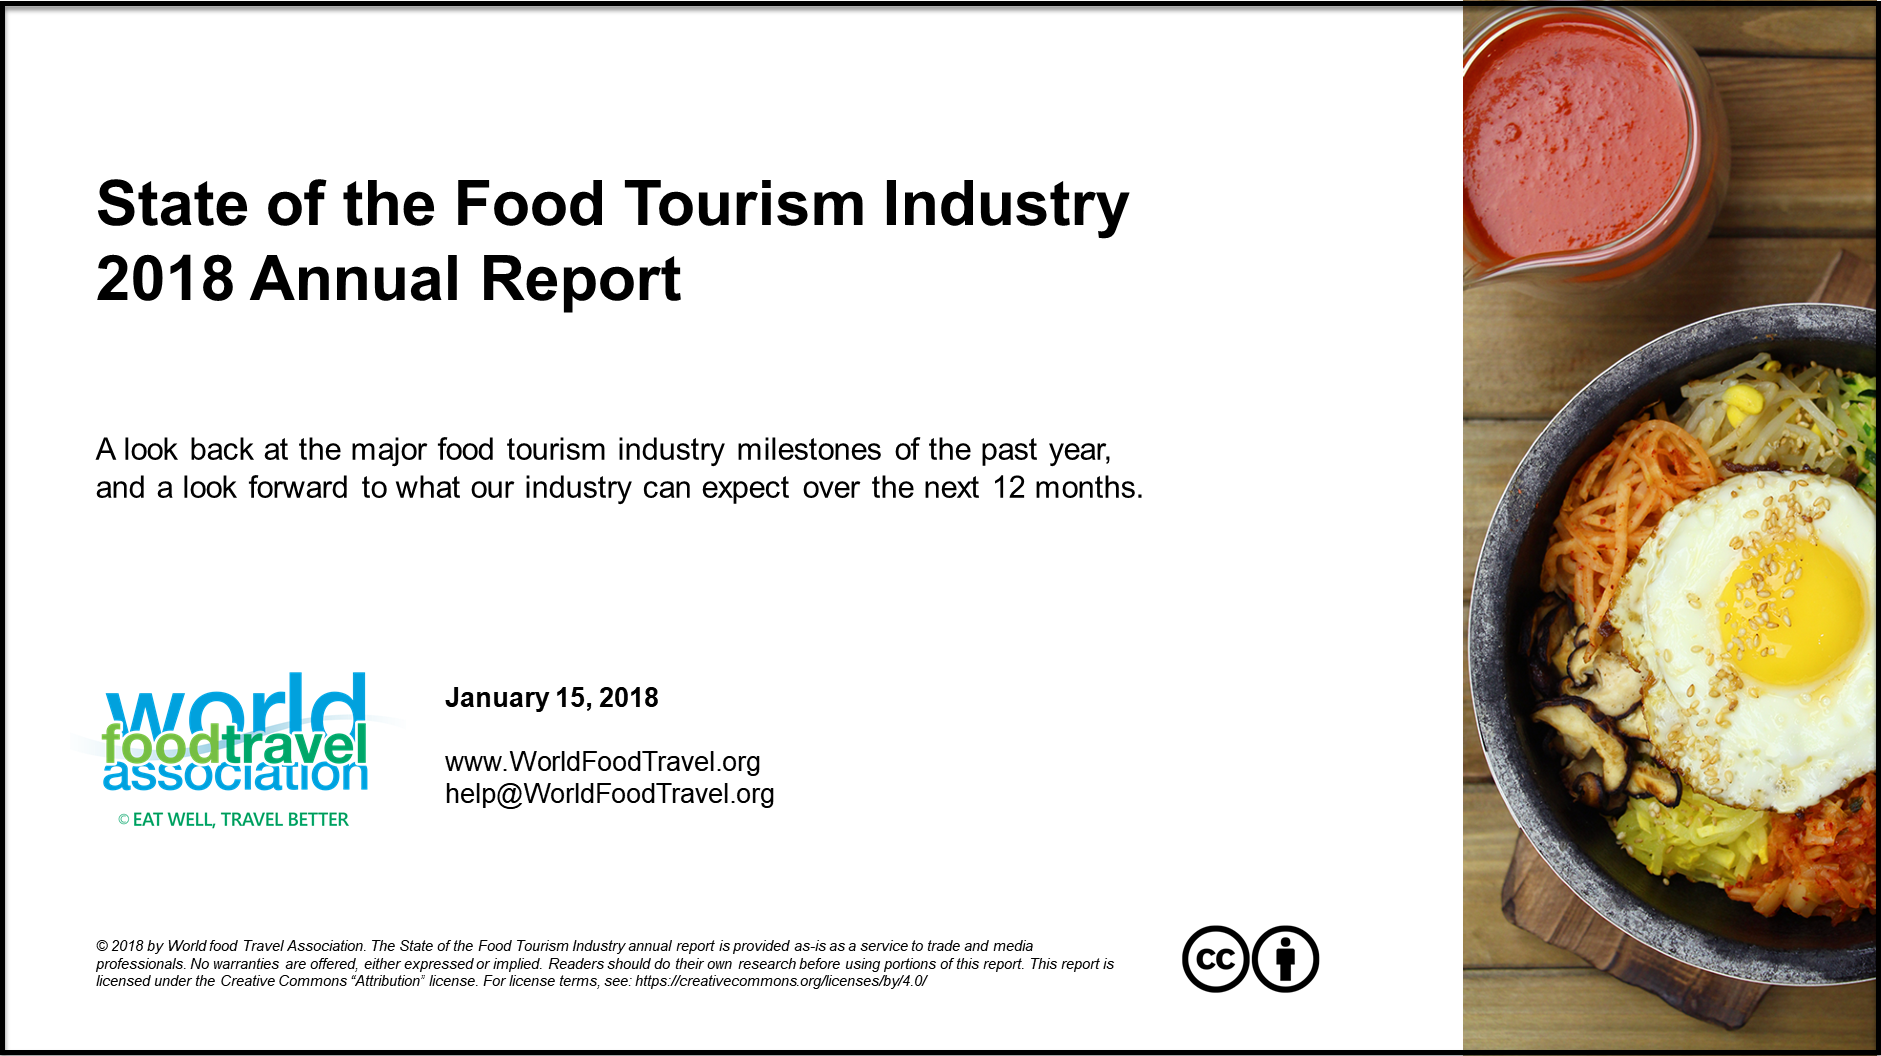 tourism industry annual report 2011 Annual tourism public lecture 2017 annual reports department of tourism annual report 2016/17 tourism annual report 2011/12.